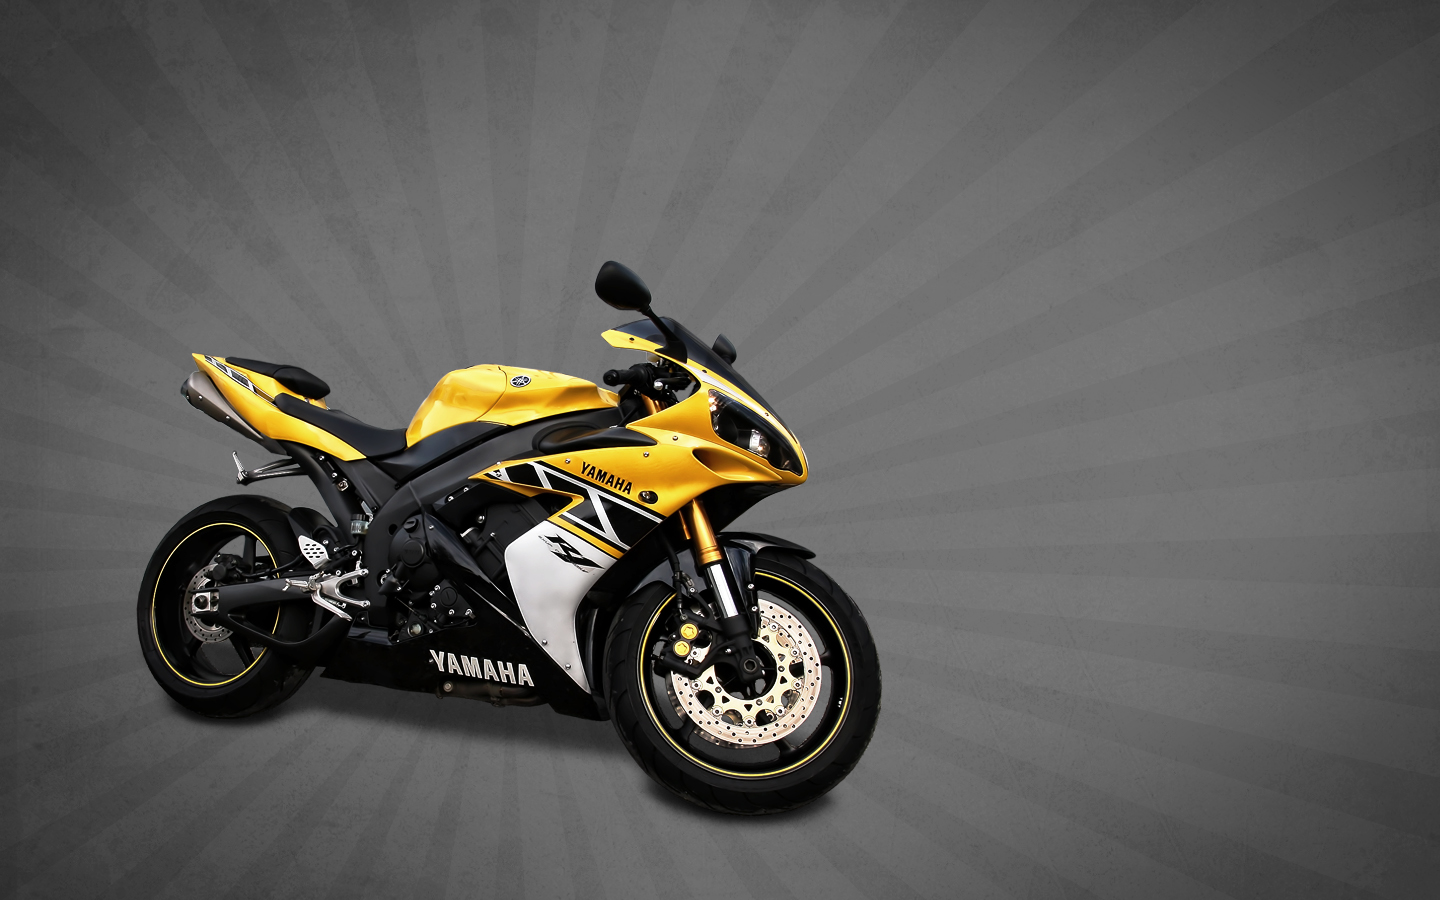 Yamaha r1 wallpapers 5 for Yamaha r1 deals